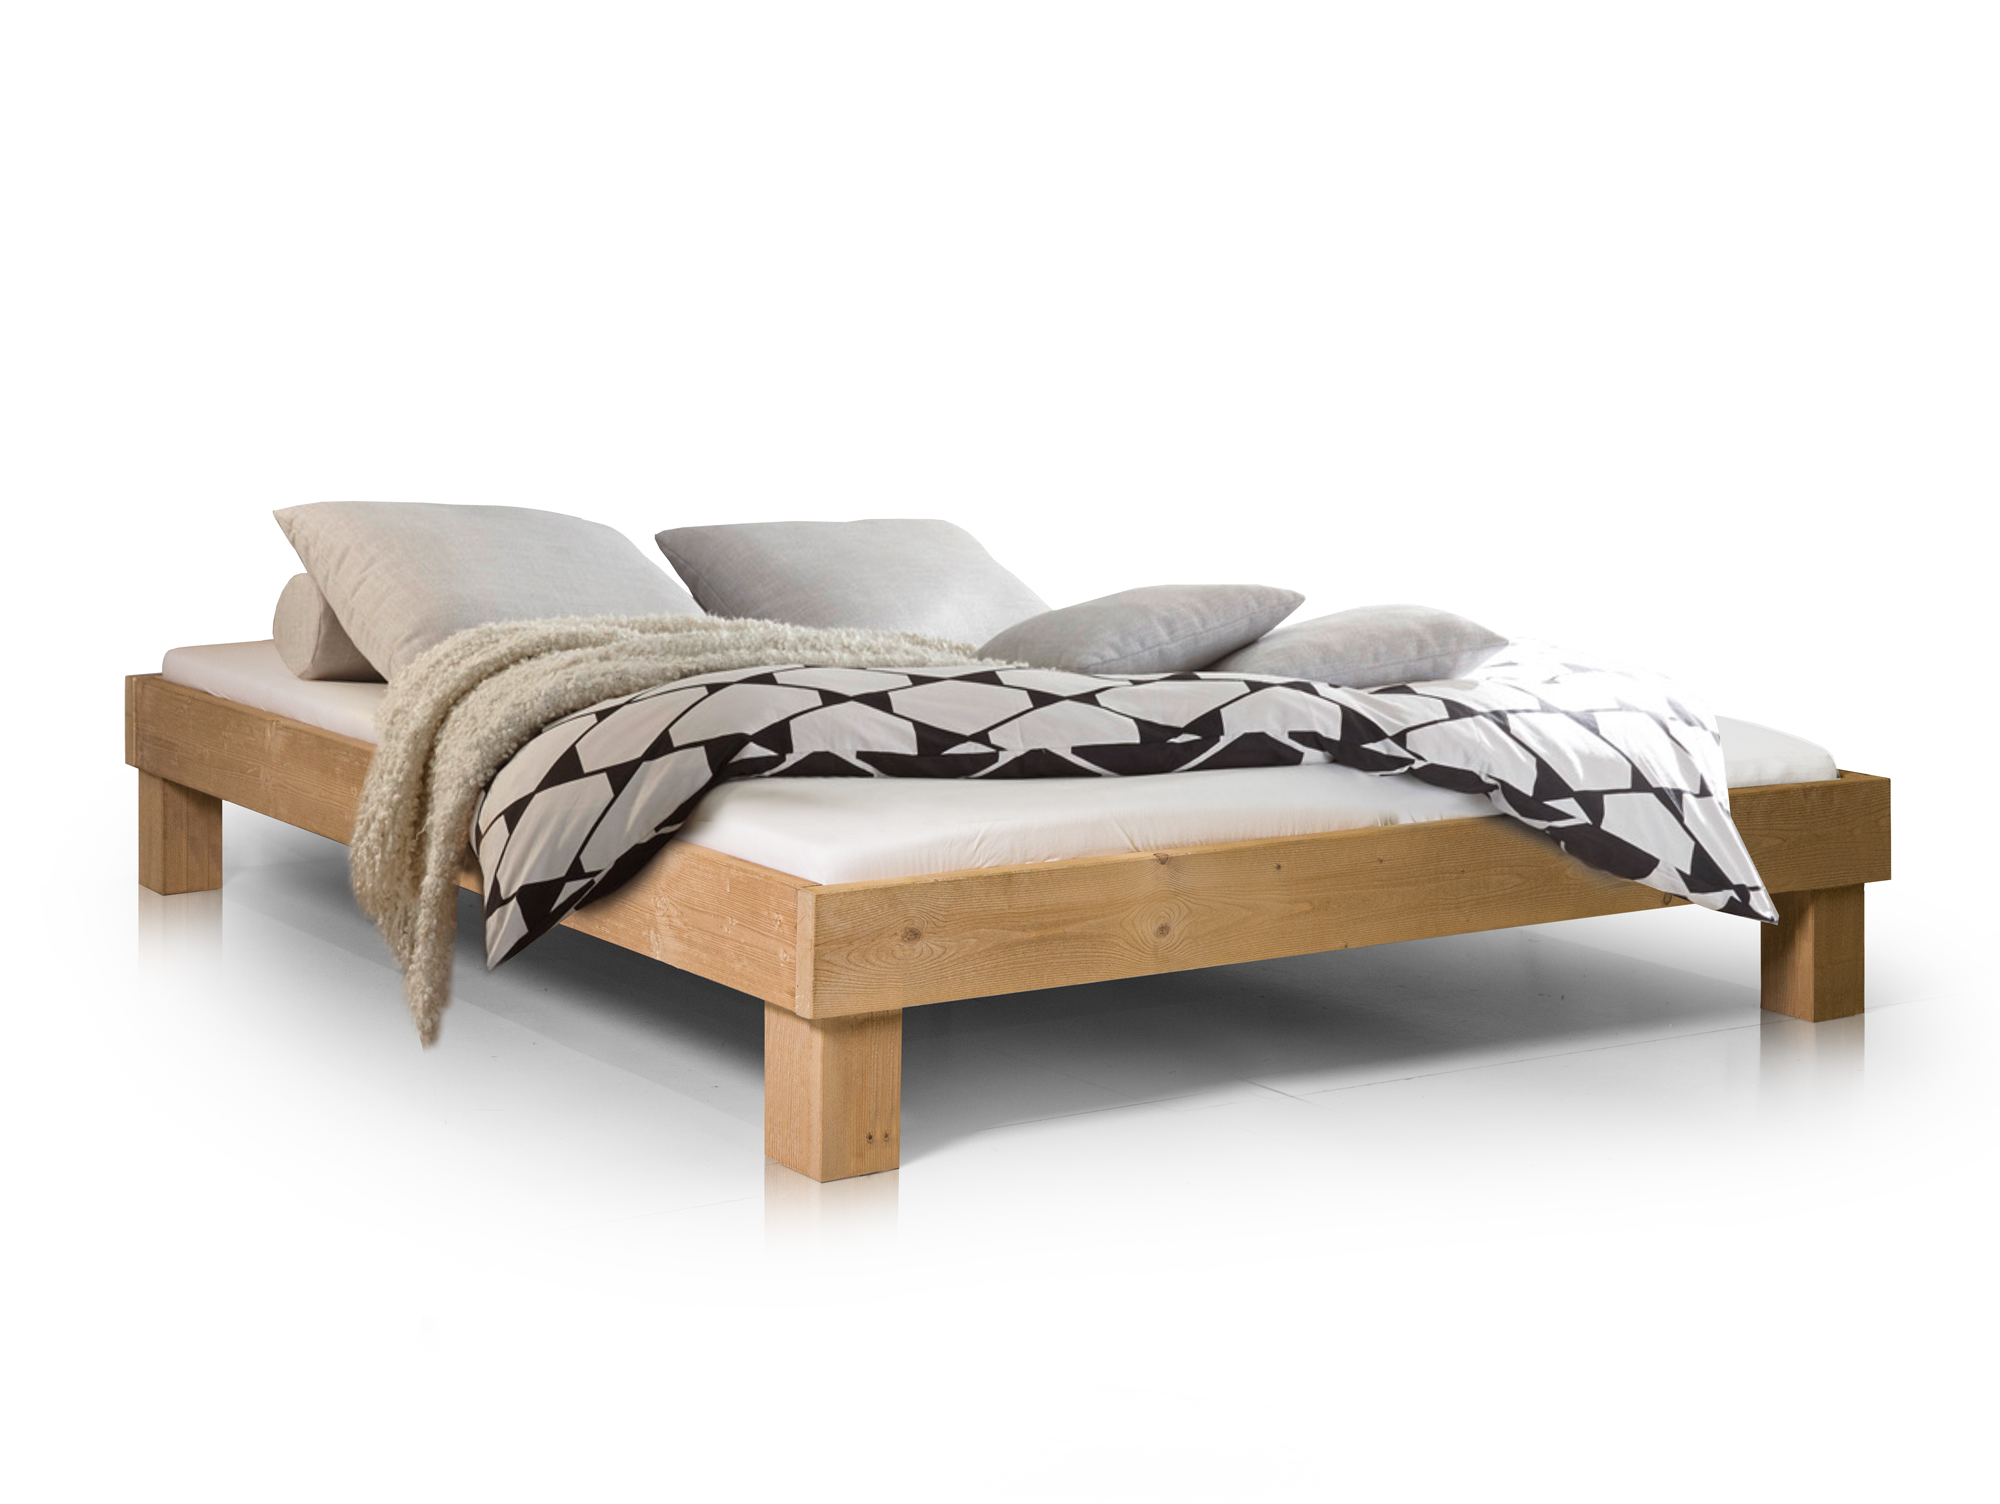 pumba doppelbett futonbett 180x200 massivholz fichte. Black Bedroom Furniture Sets. Home Design Ideas